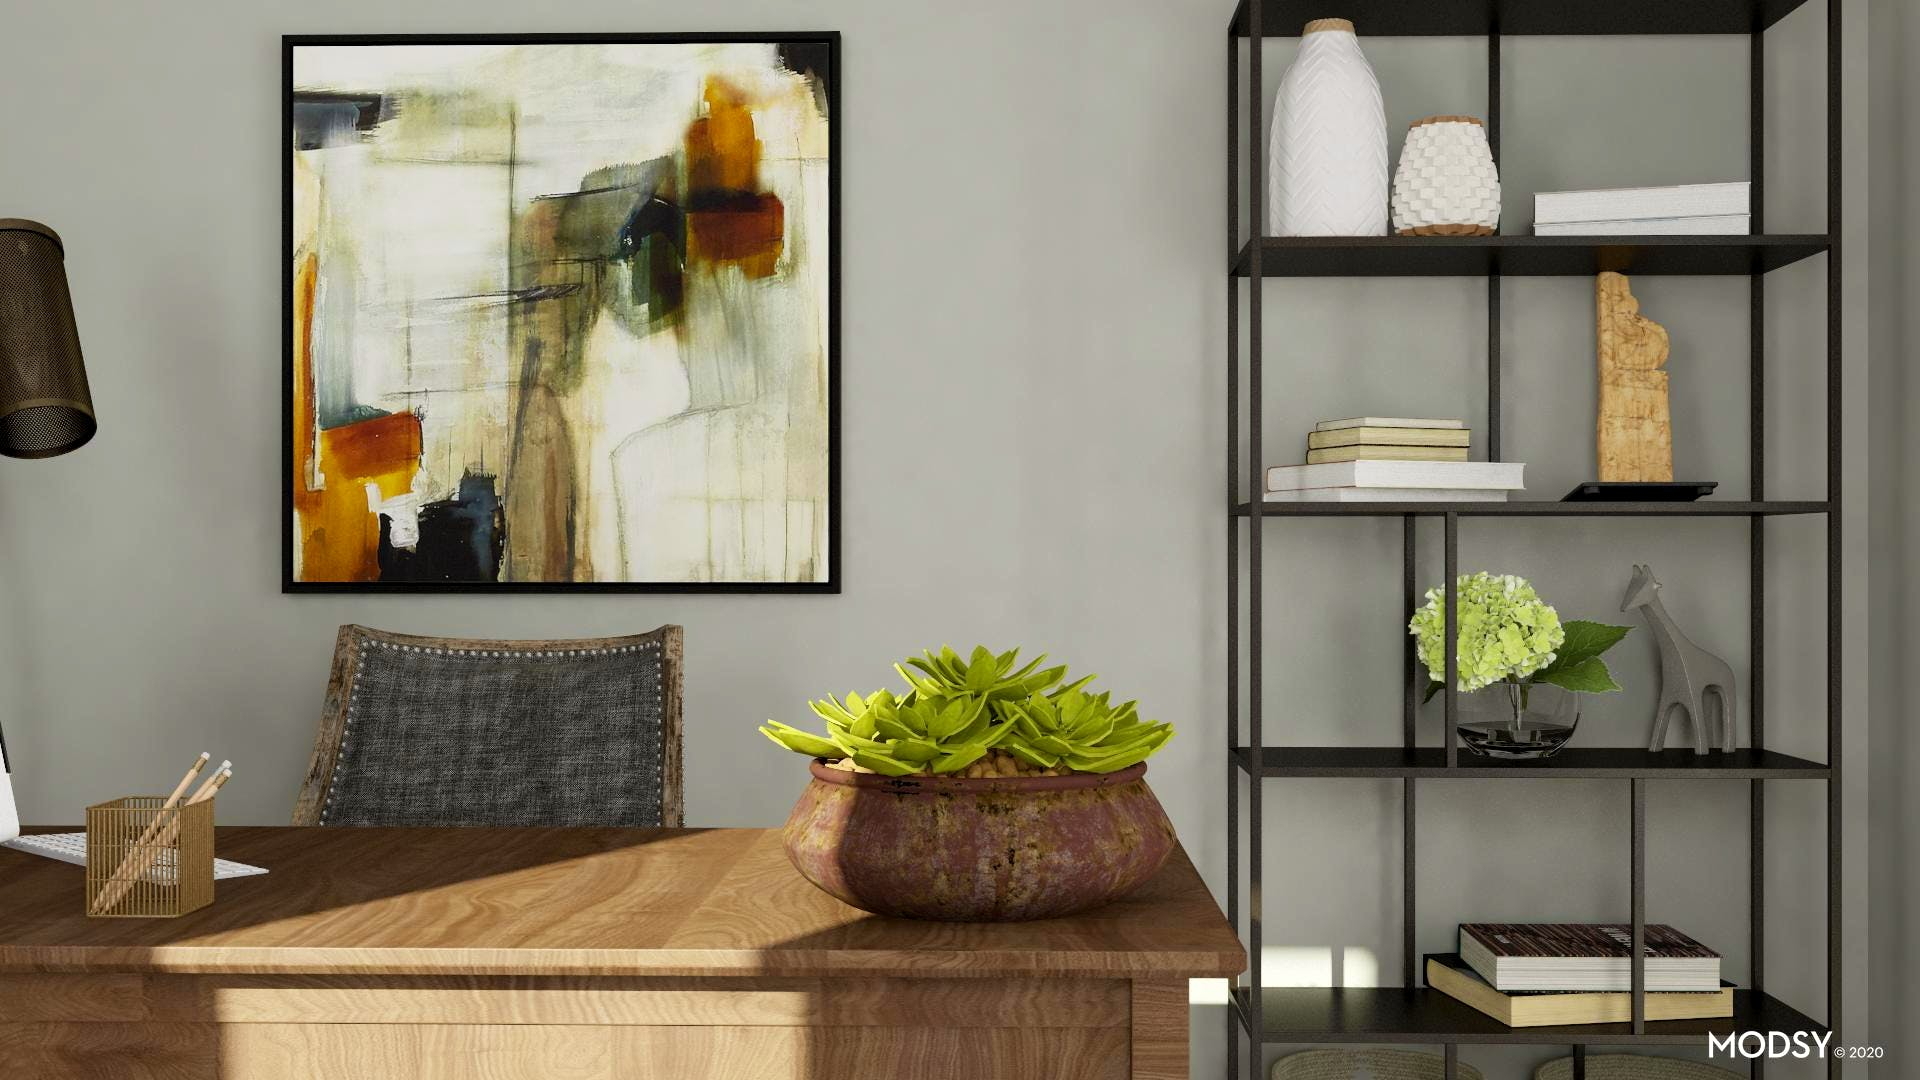 Abstract Art and Decor in Traditional Home Office